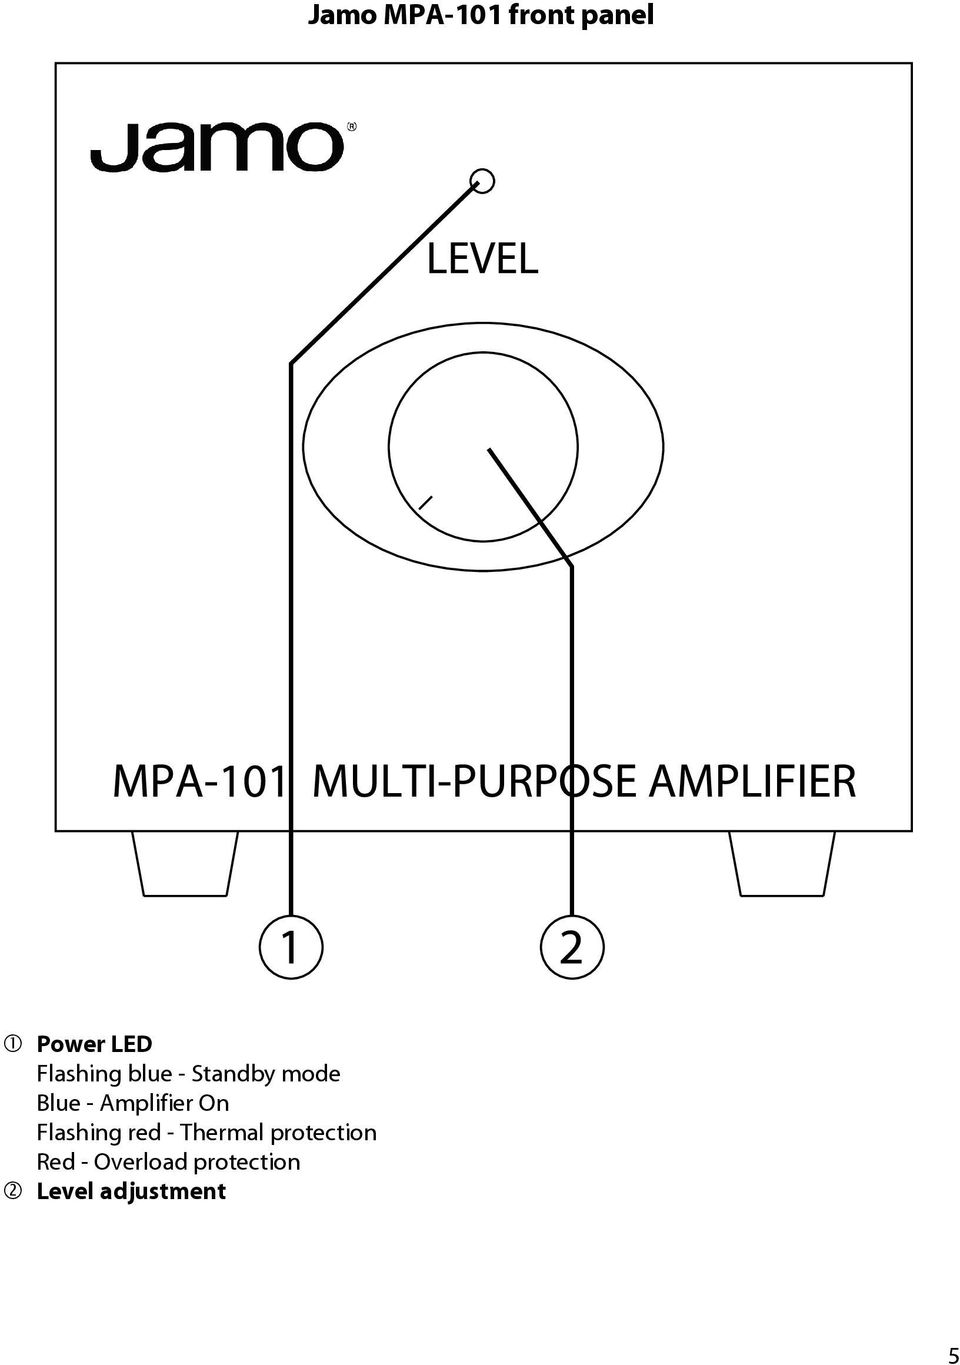 Amplifier On Flashing red - Thermal